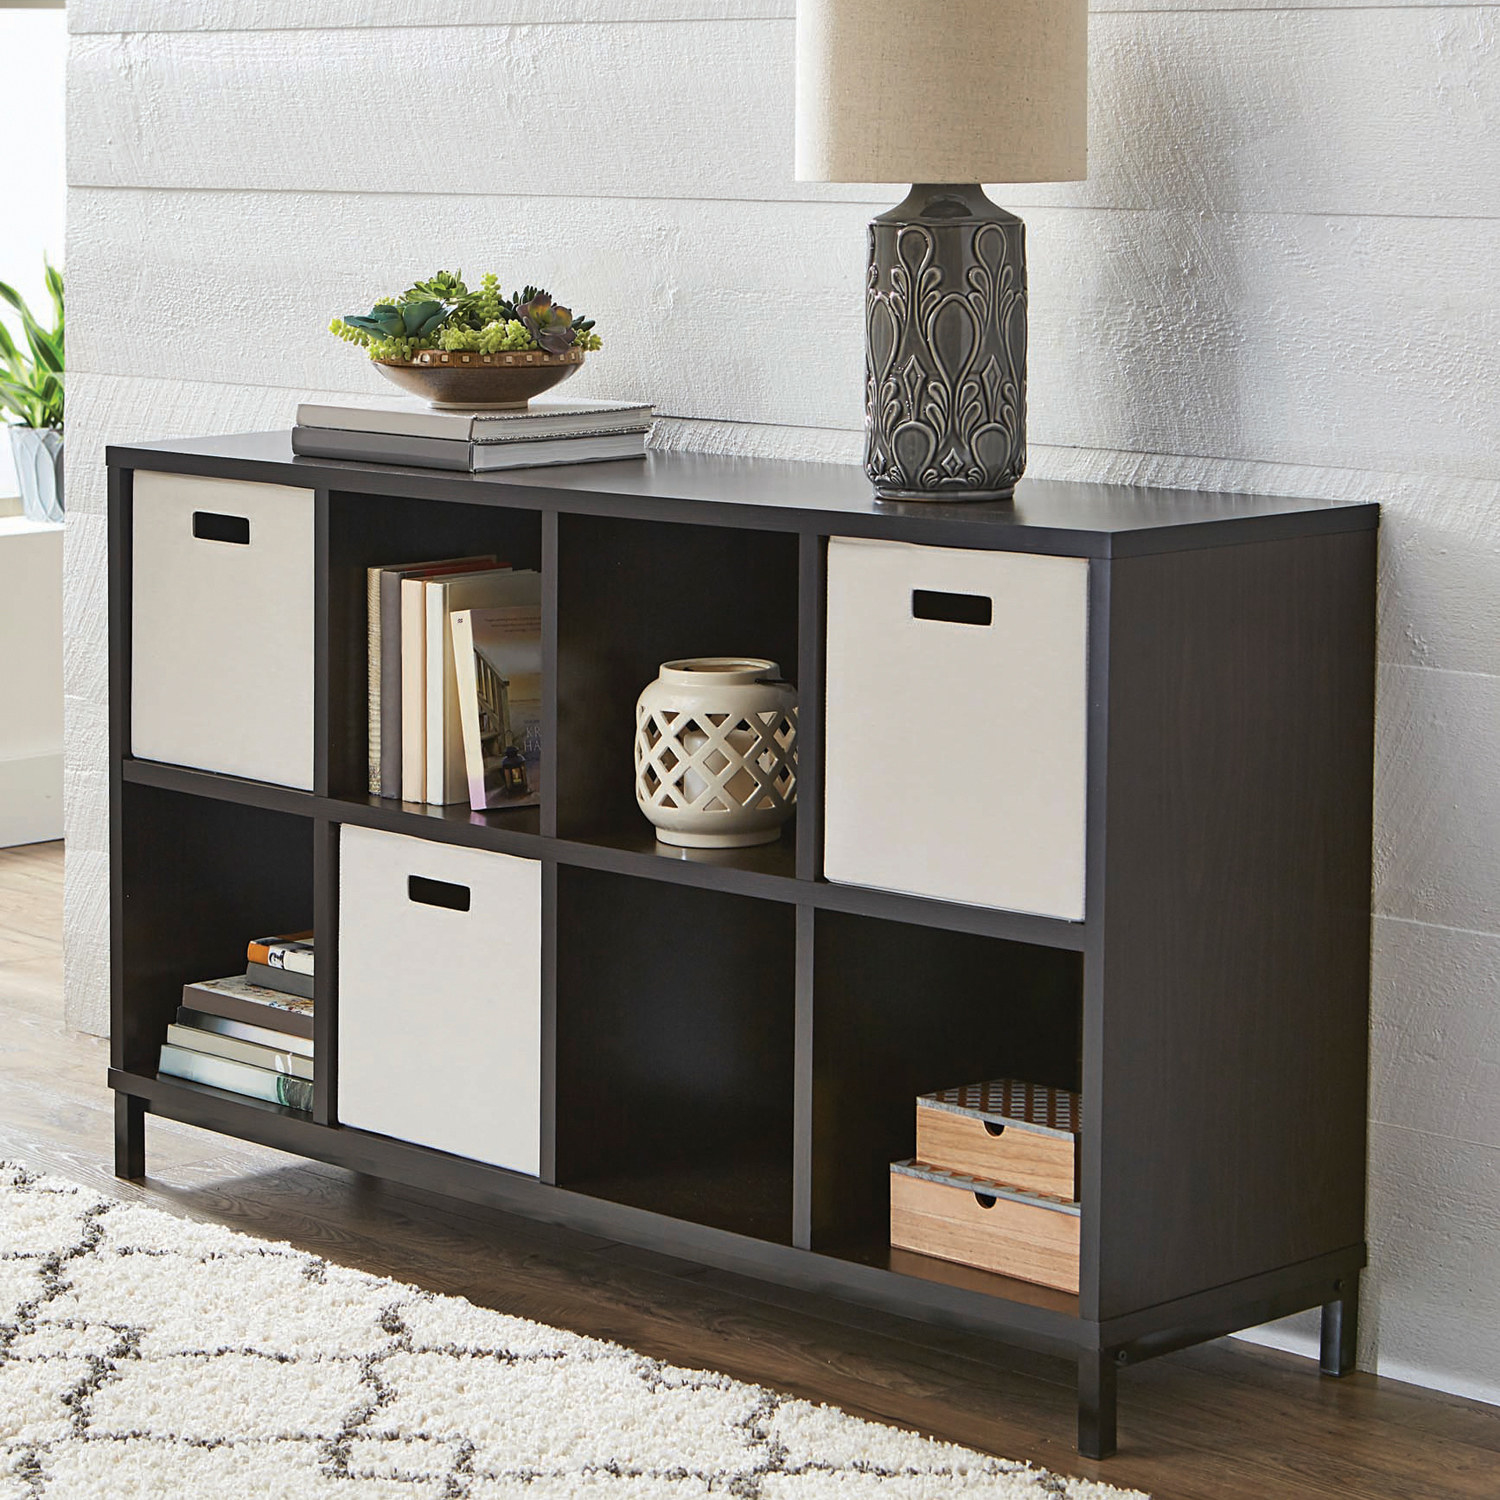 dark brown storage unit holding books, decorative boxes, lamp, and with three cubes turned into drawers